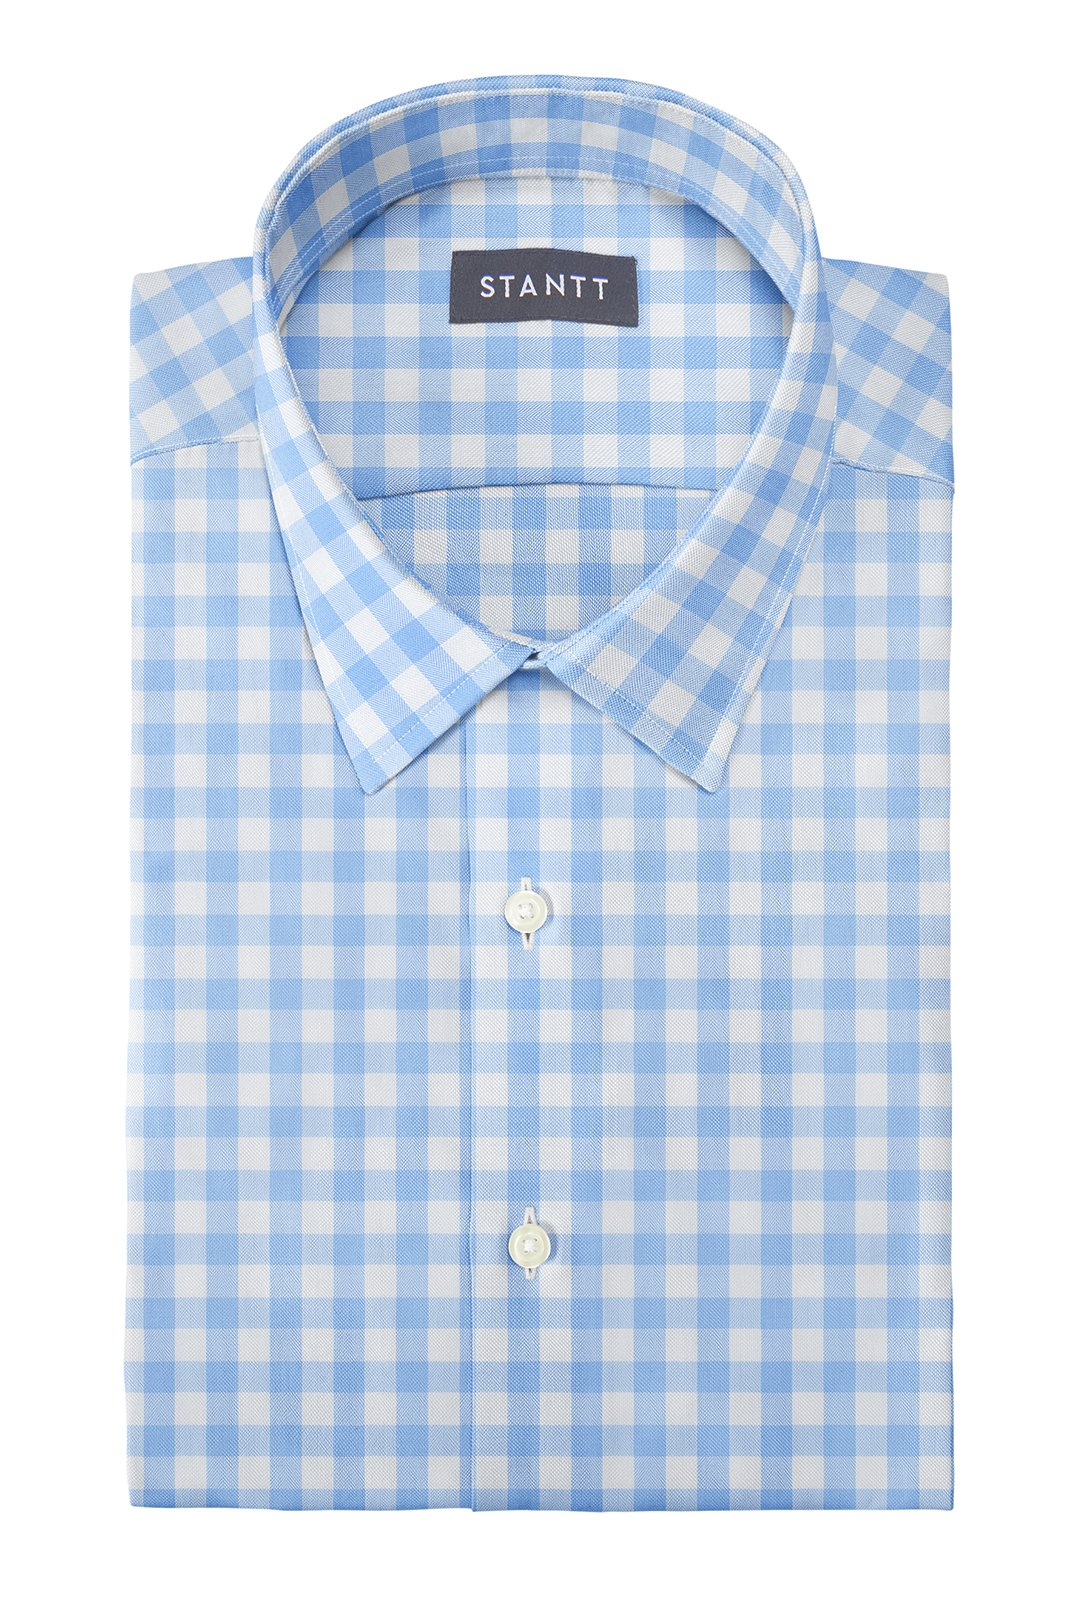 Duca Light Blue Gingham: Semi-Spread Collar, Barrel Cuff